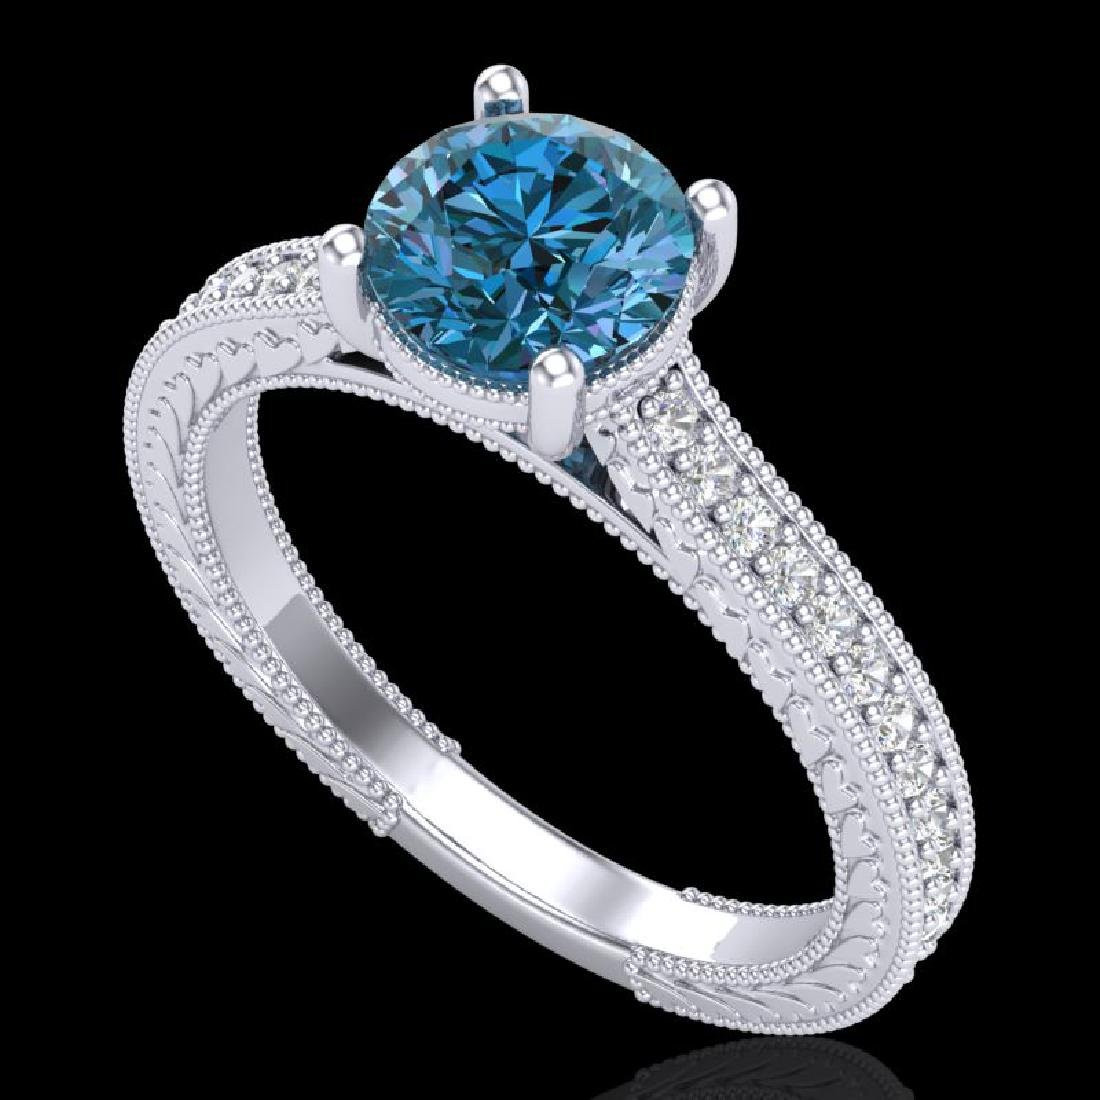 1.45 CTW Fancy Intense Blue Diamond Solitaire Art Deco